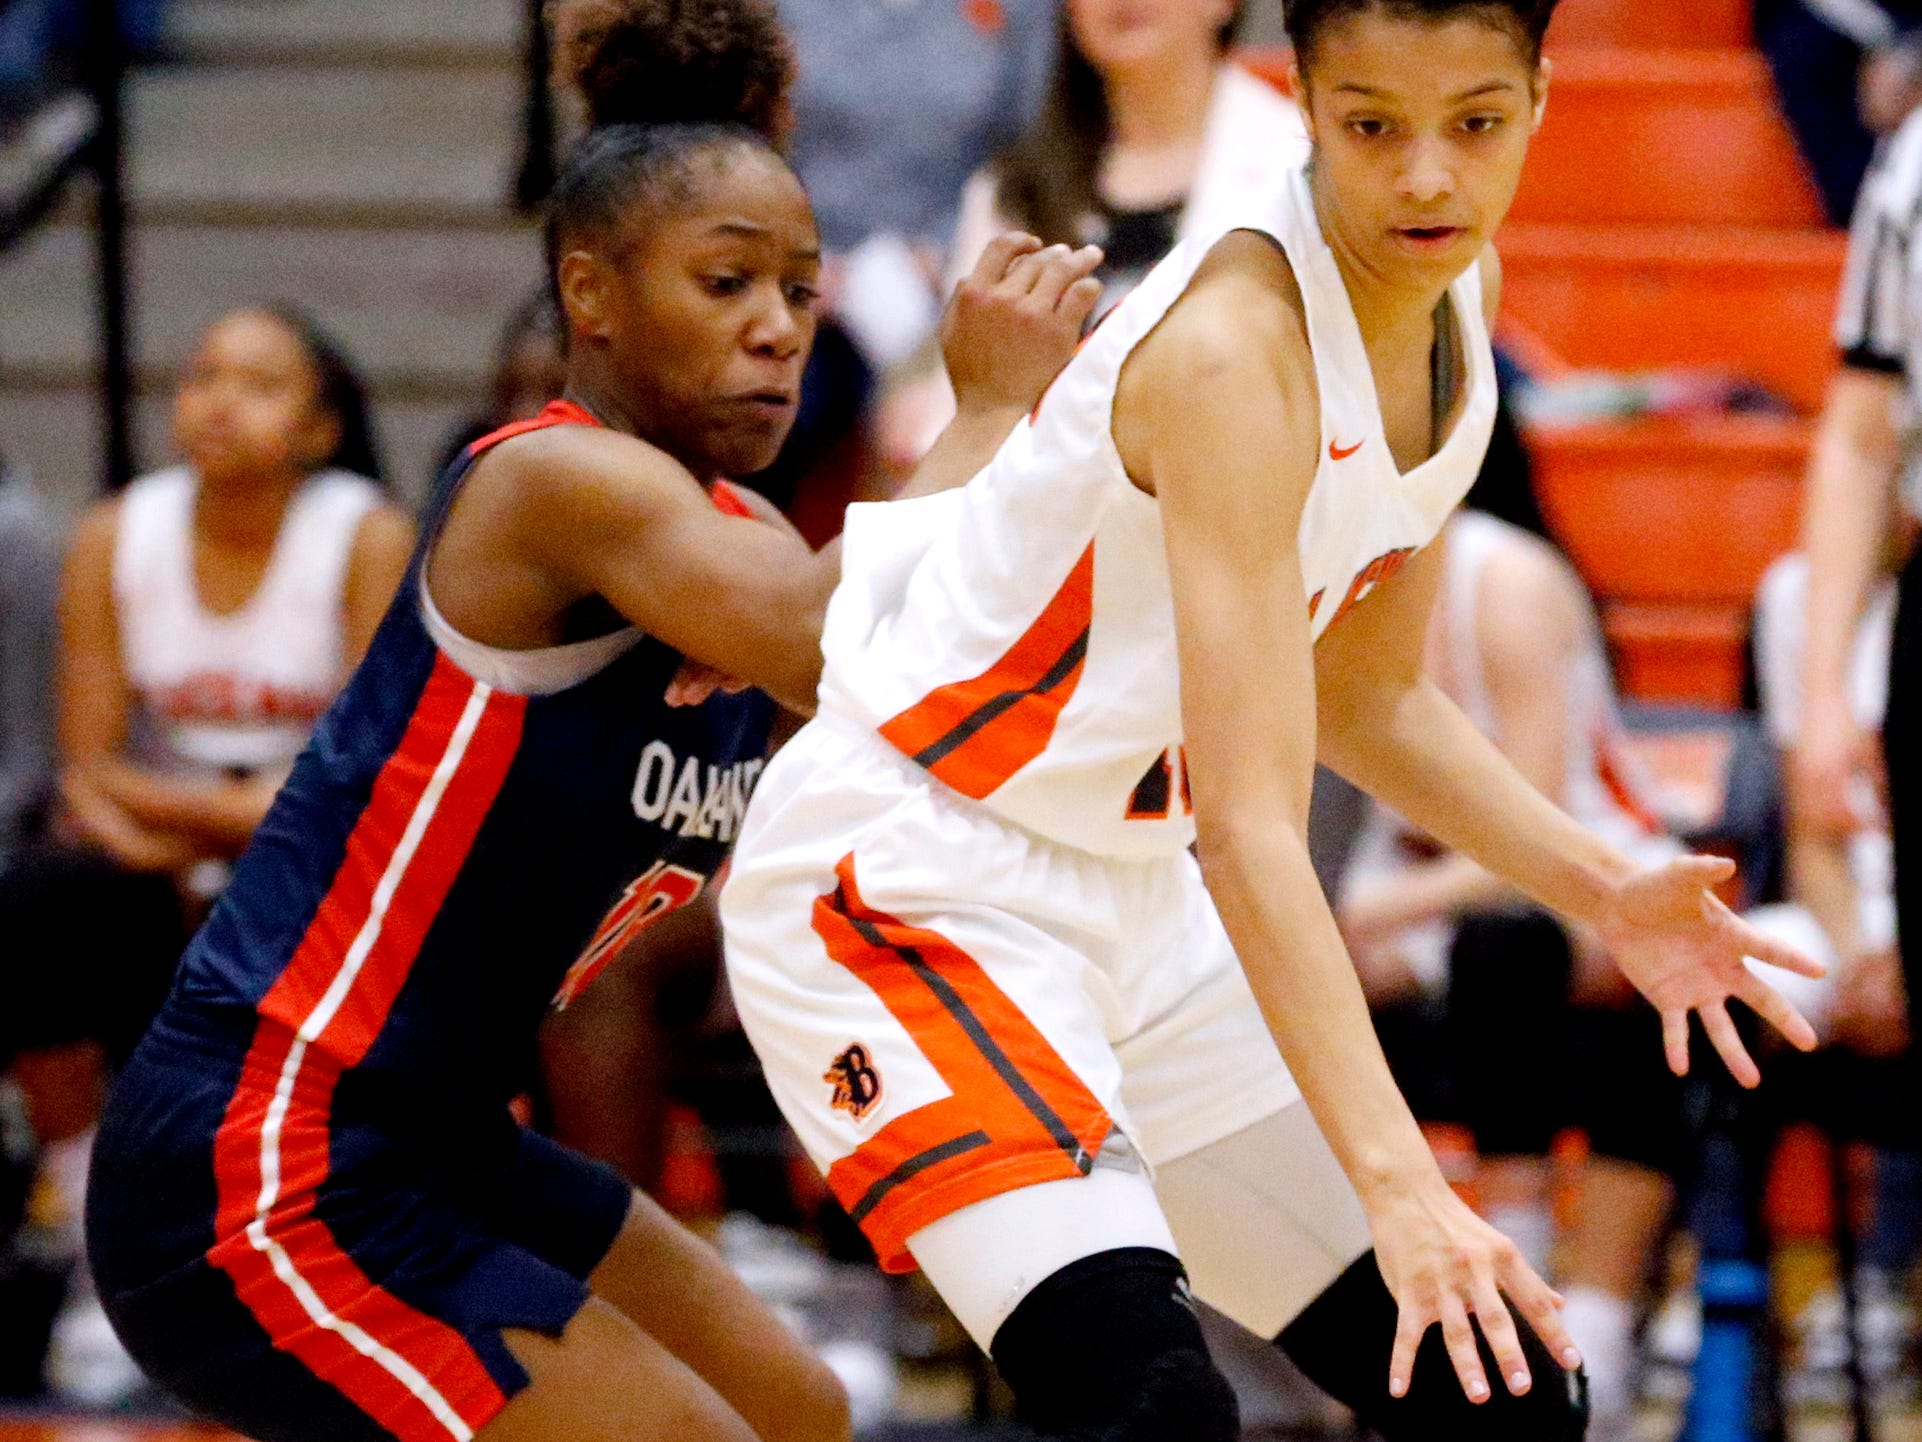 Blackman's Victoria Page (15) moves the ball around the court as Oakland's Dakoria Puckett (10) guards her on Friday, Feb. 8, 2019.